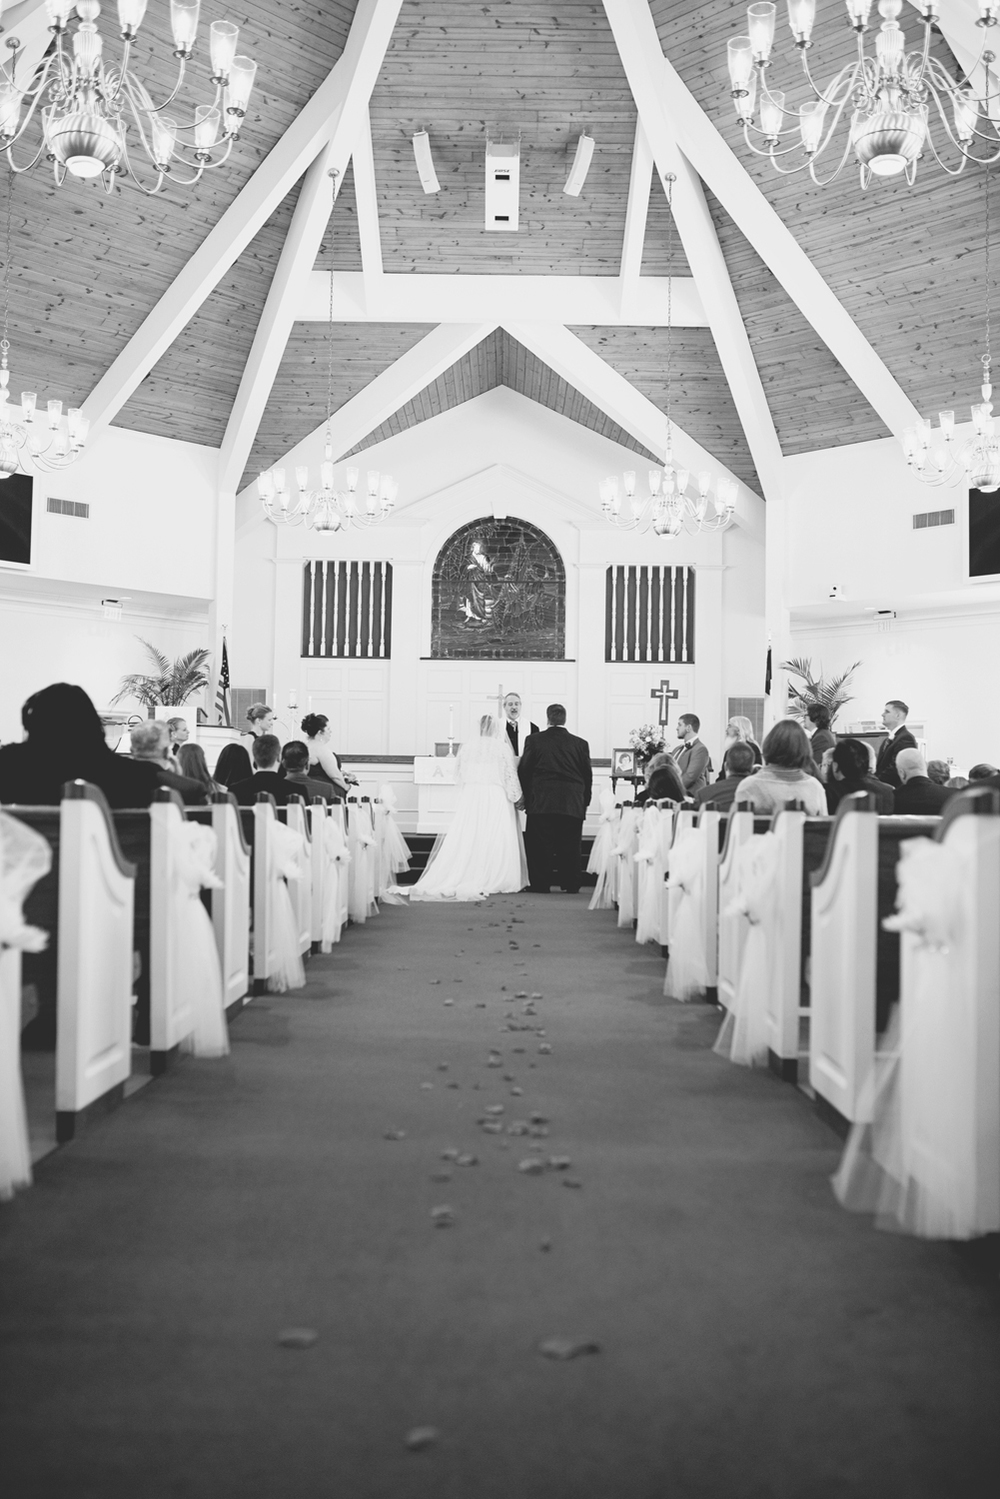 Church wedding ceremony | Winter wedding | Black and white